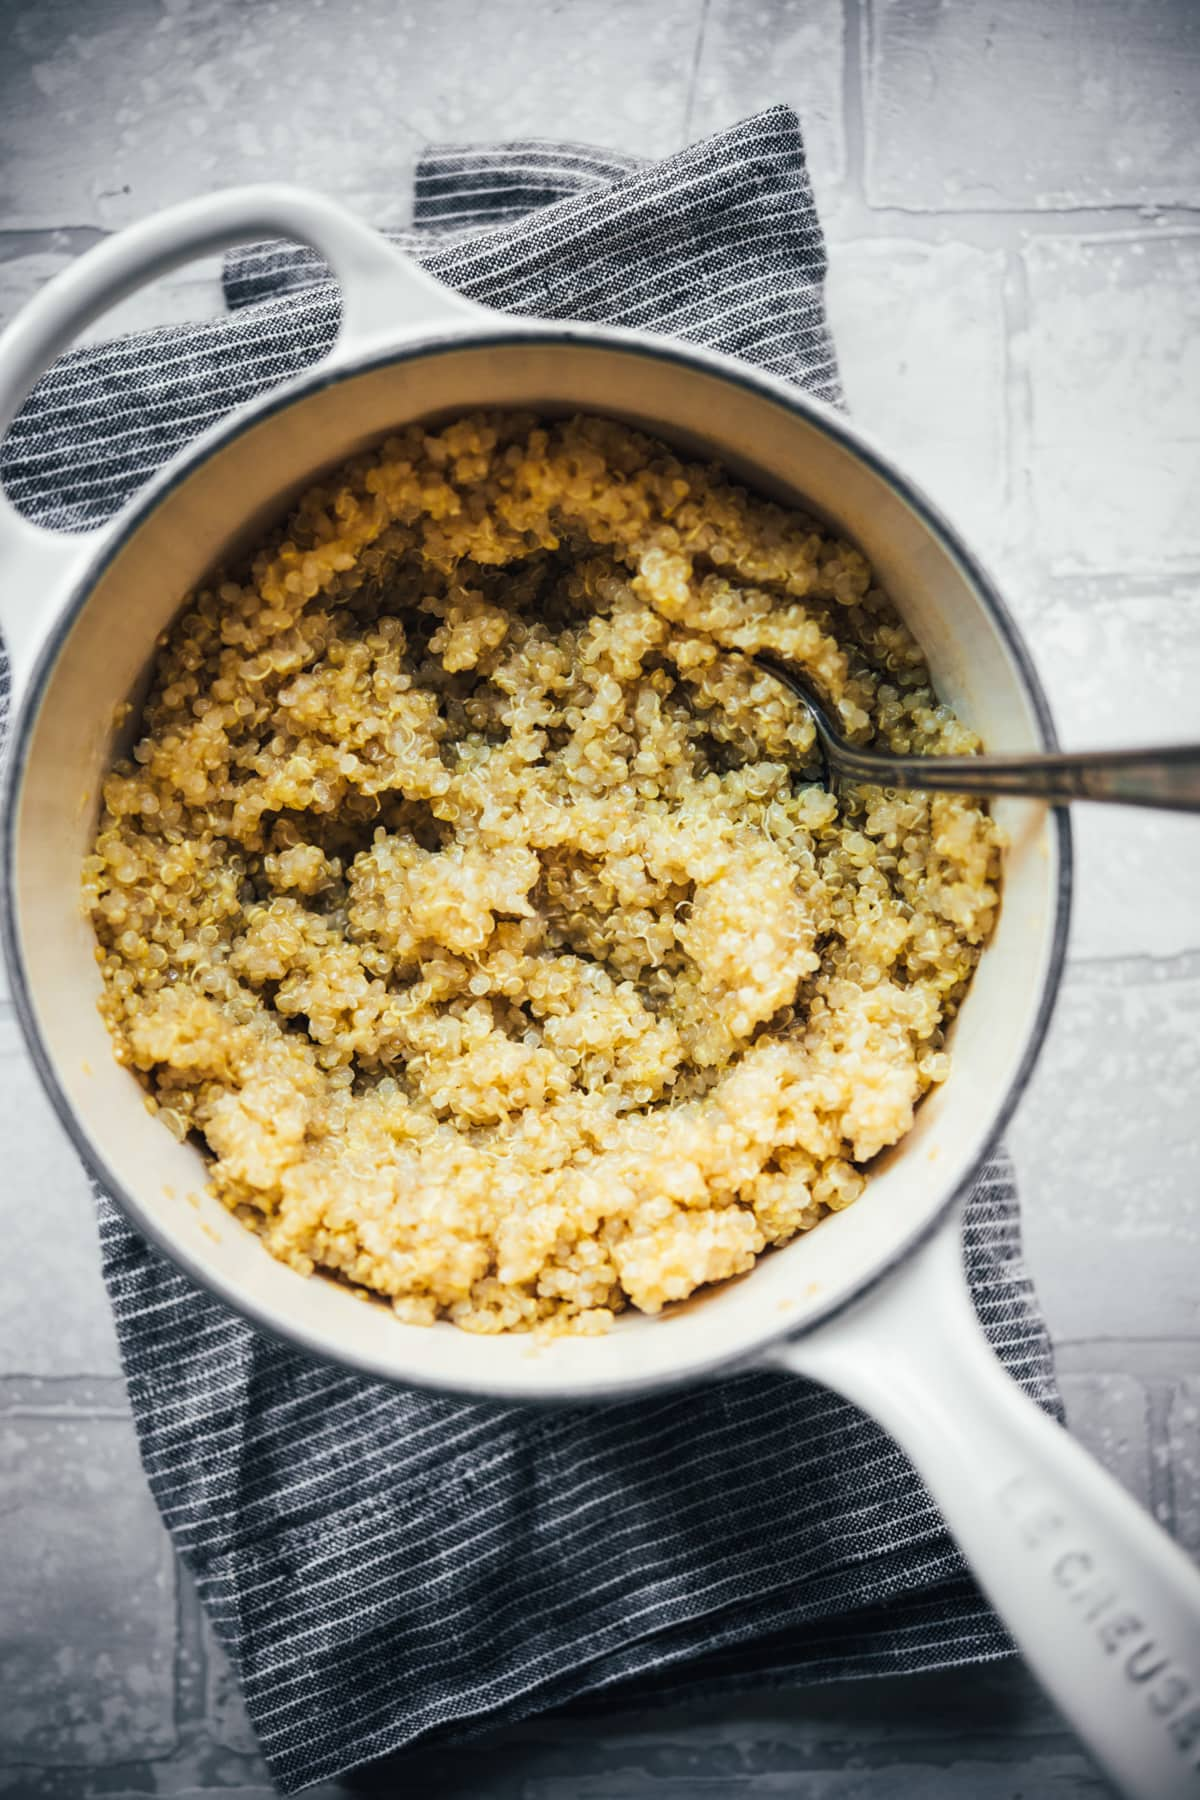 overhead view of cooked quinoa in a small saucepan.